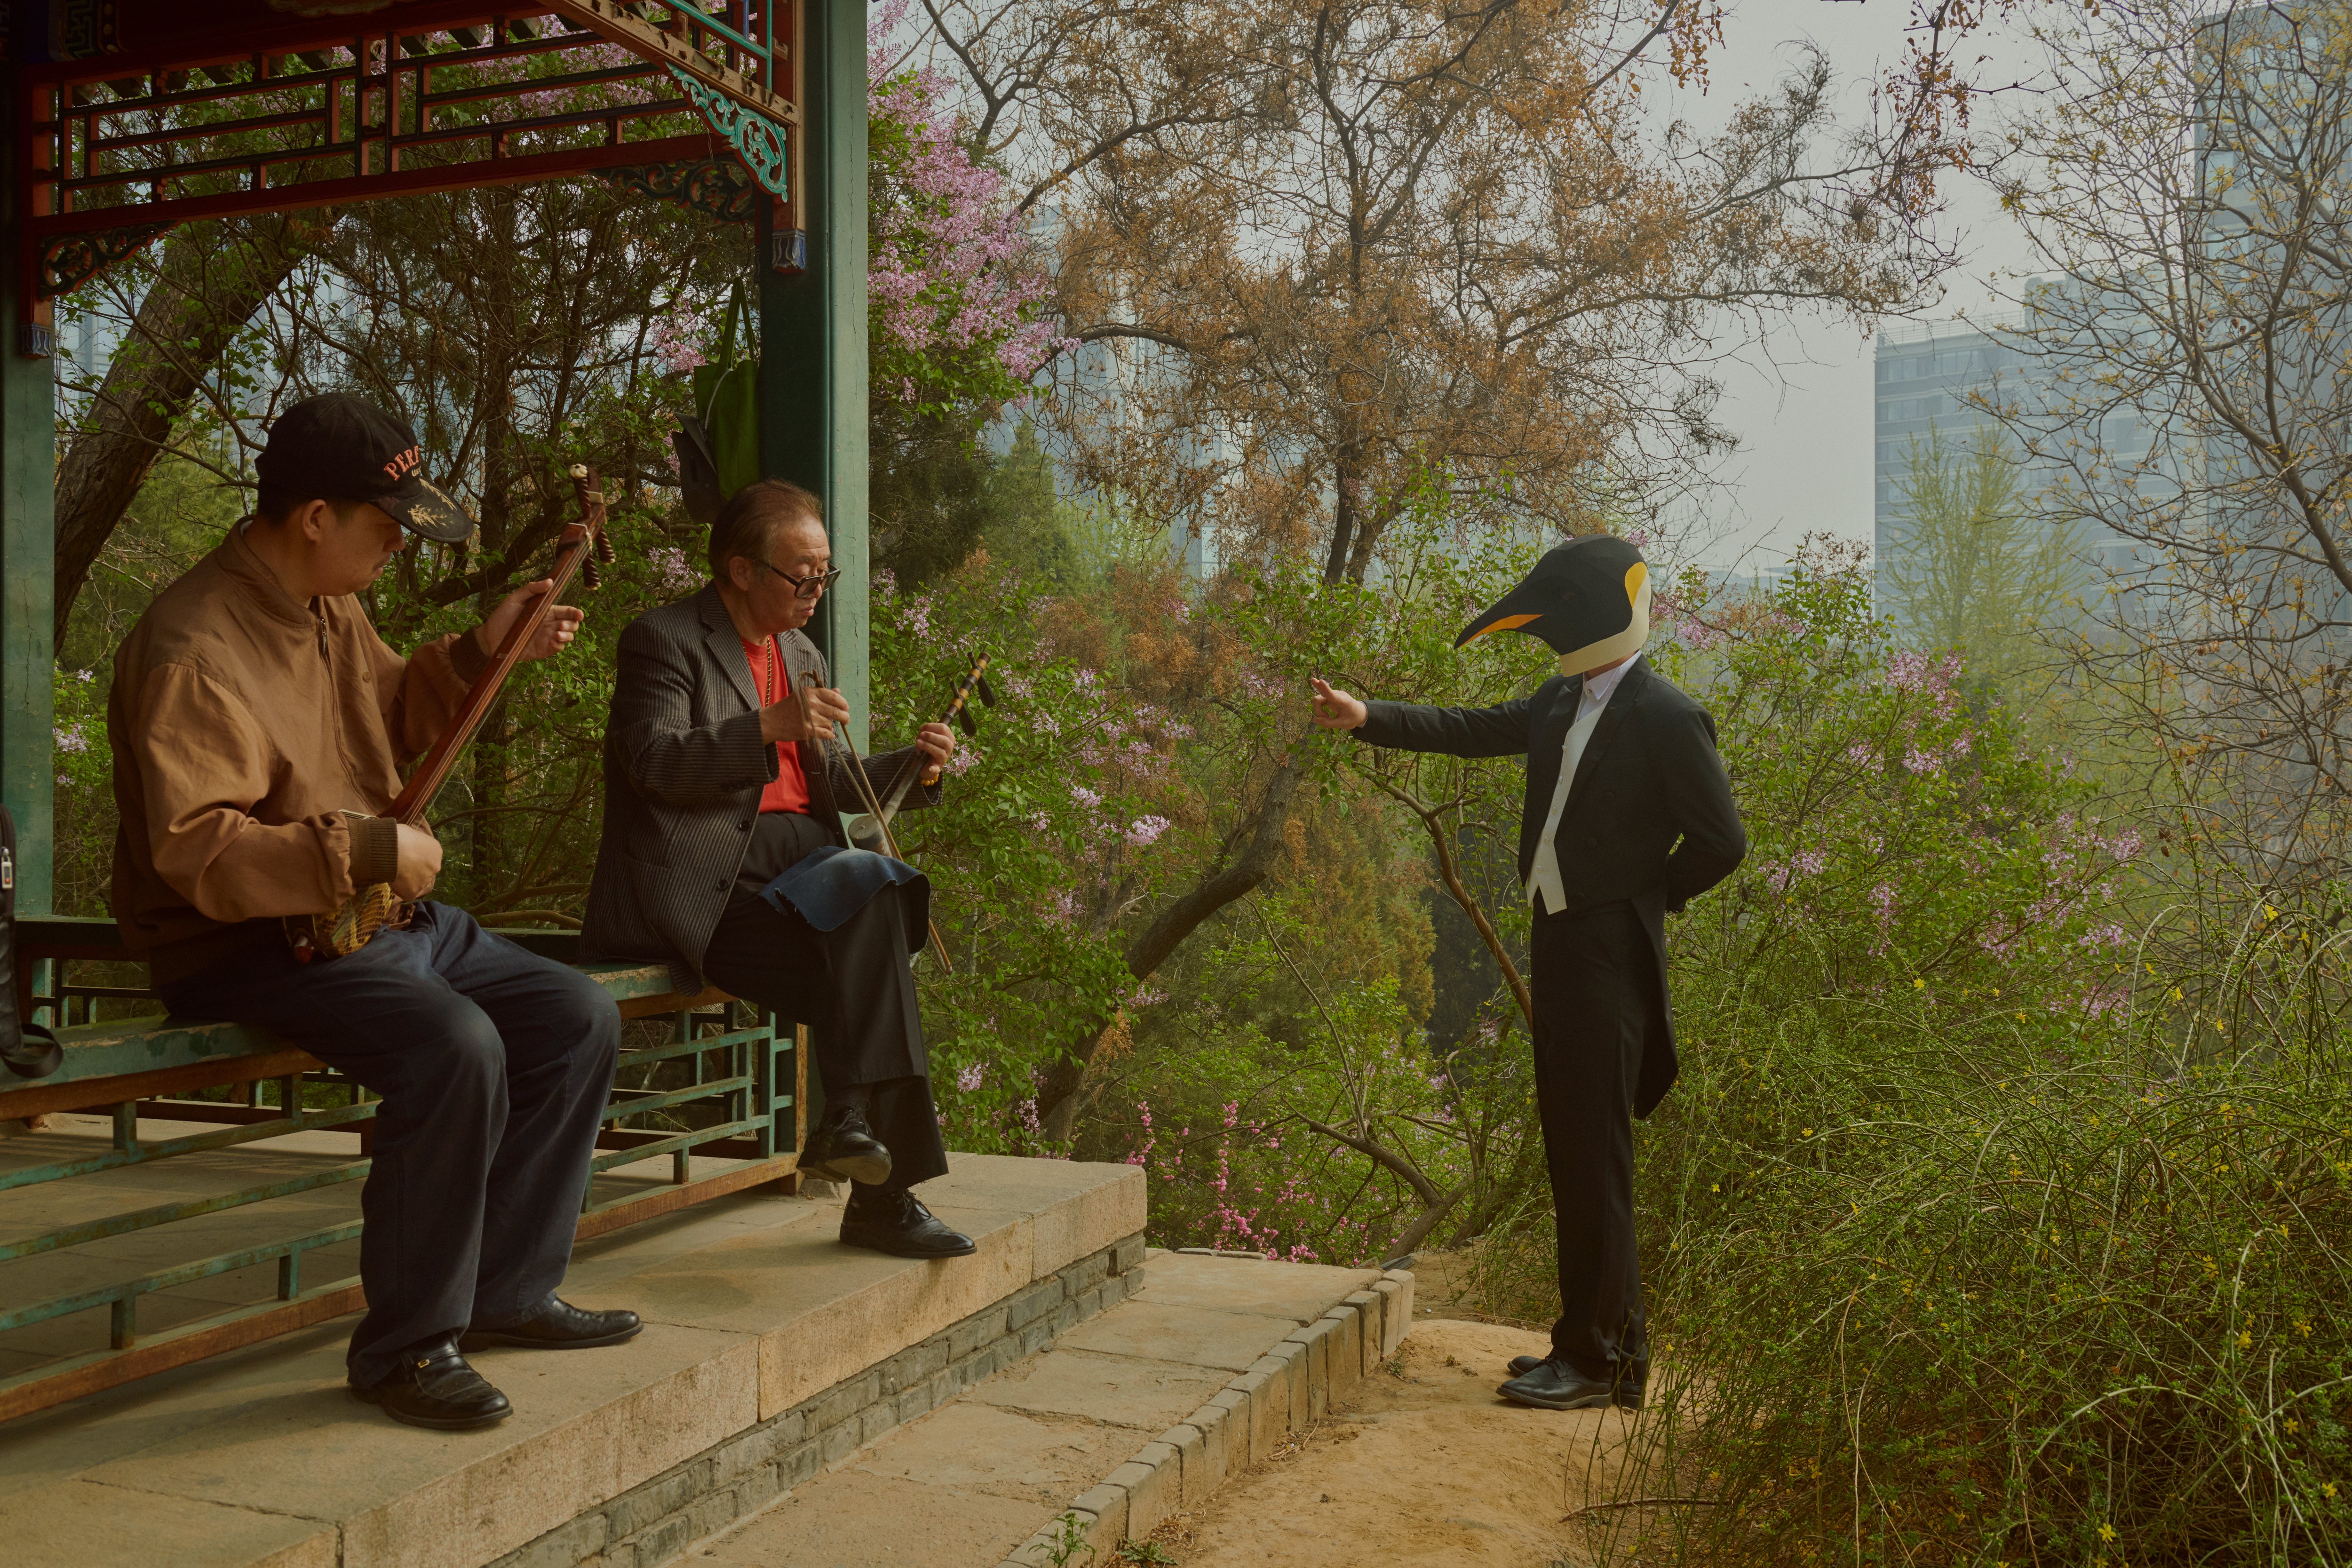 This corner in a park says a lot about China, Xu said. It shows a typical daily routine of a retired man, who visits a park and sings Beijing opera while playing an urhu, a traditional string instrument, inside a pavilion. There's a skyscraper in the distance.